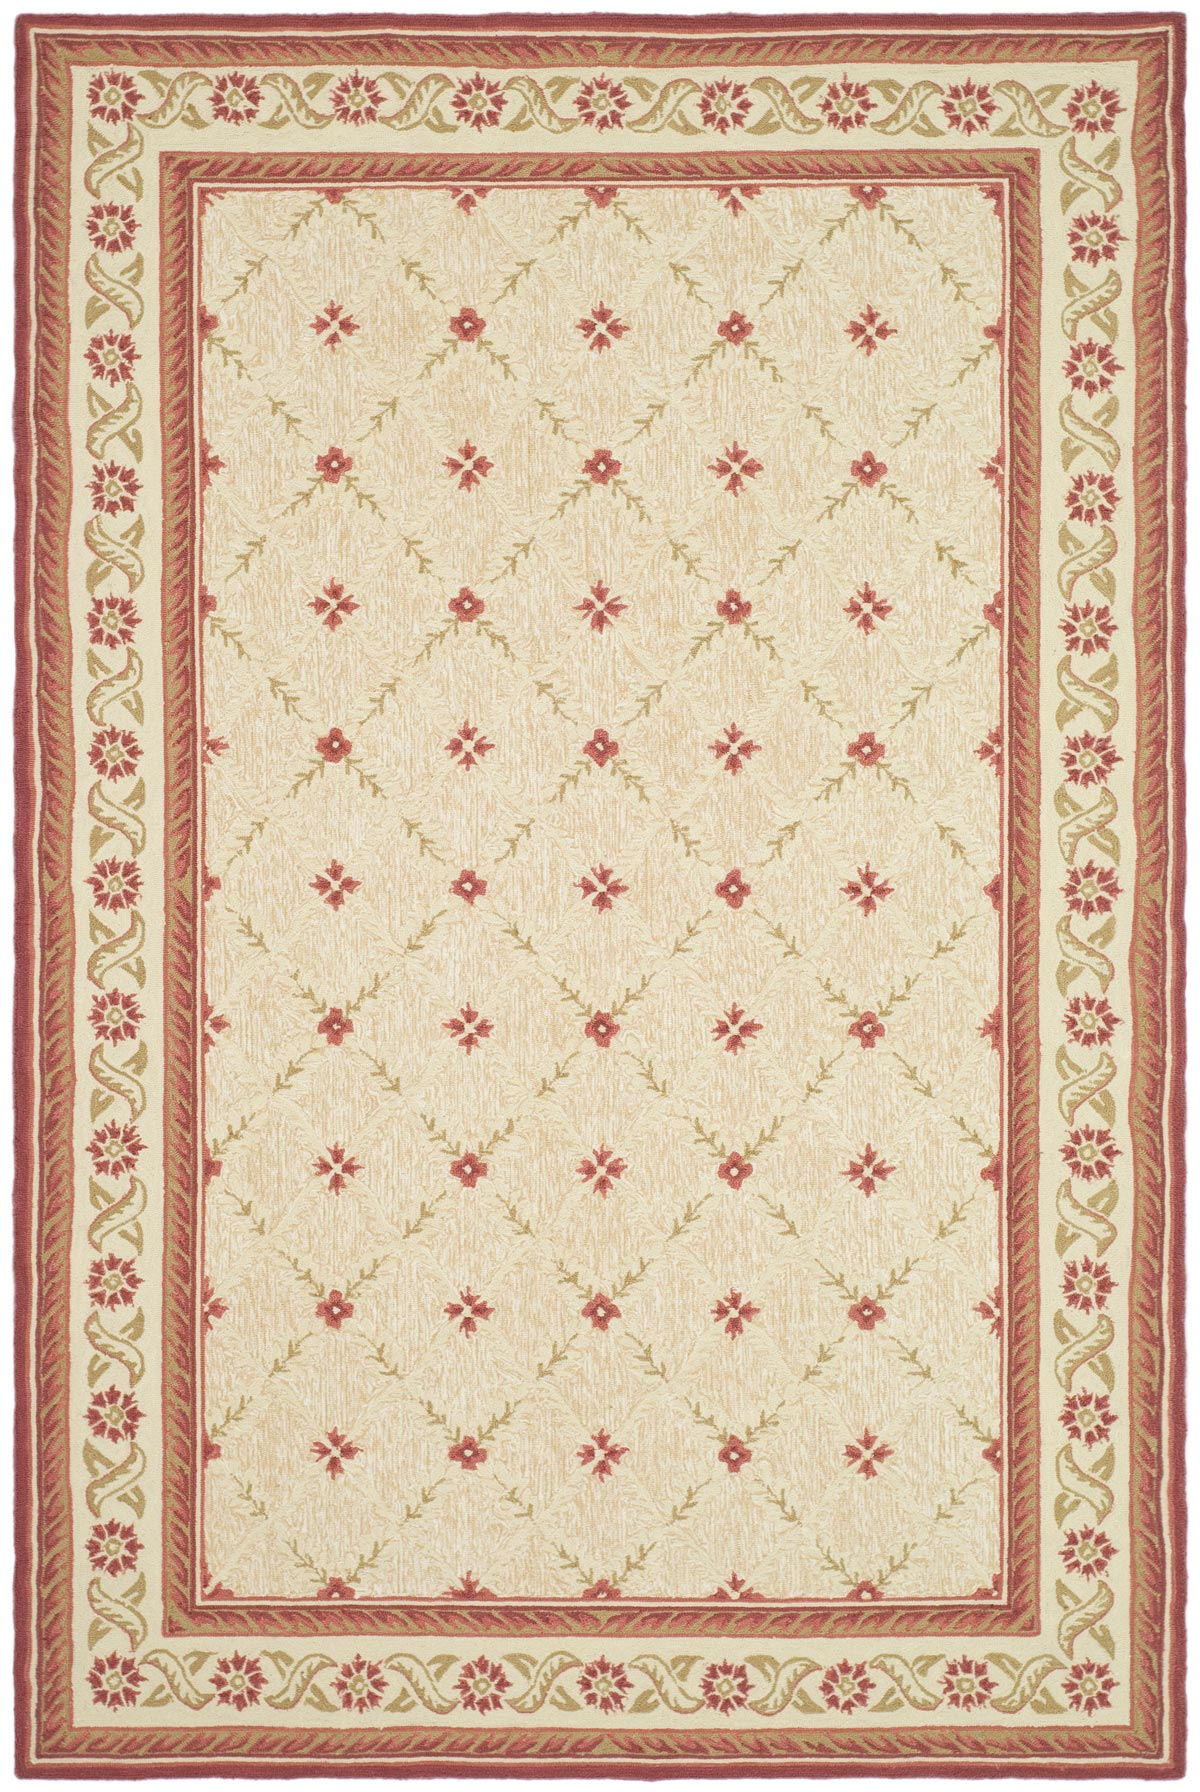 Rug Wil324d Wilton Area Rugs By Safavieh